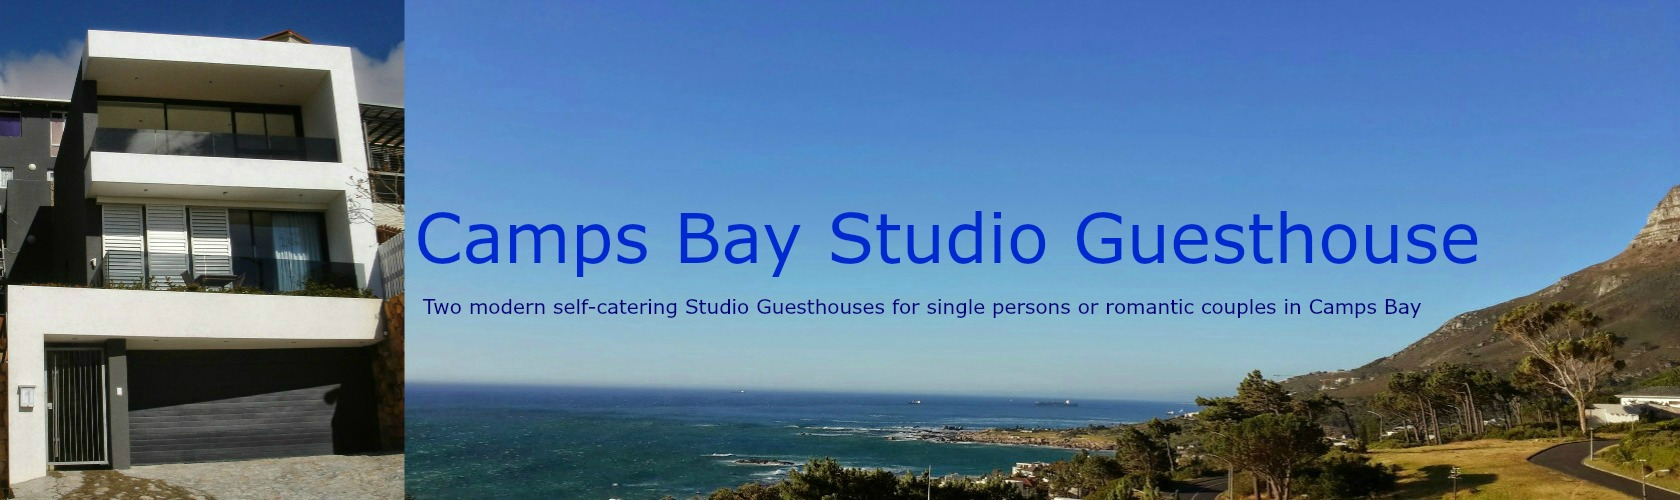 Camps Bay studio guesthouse logo